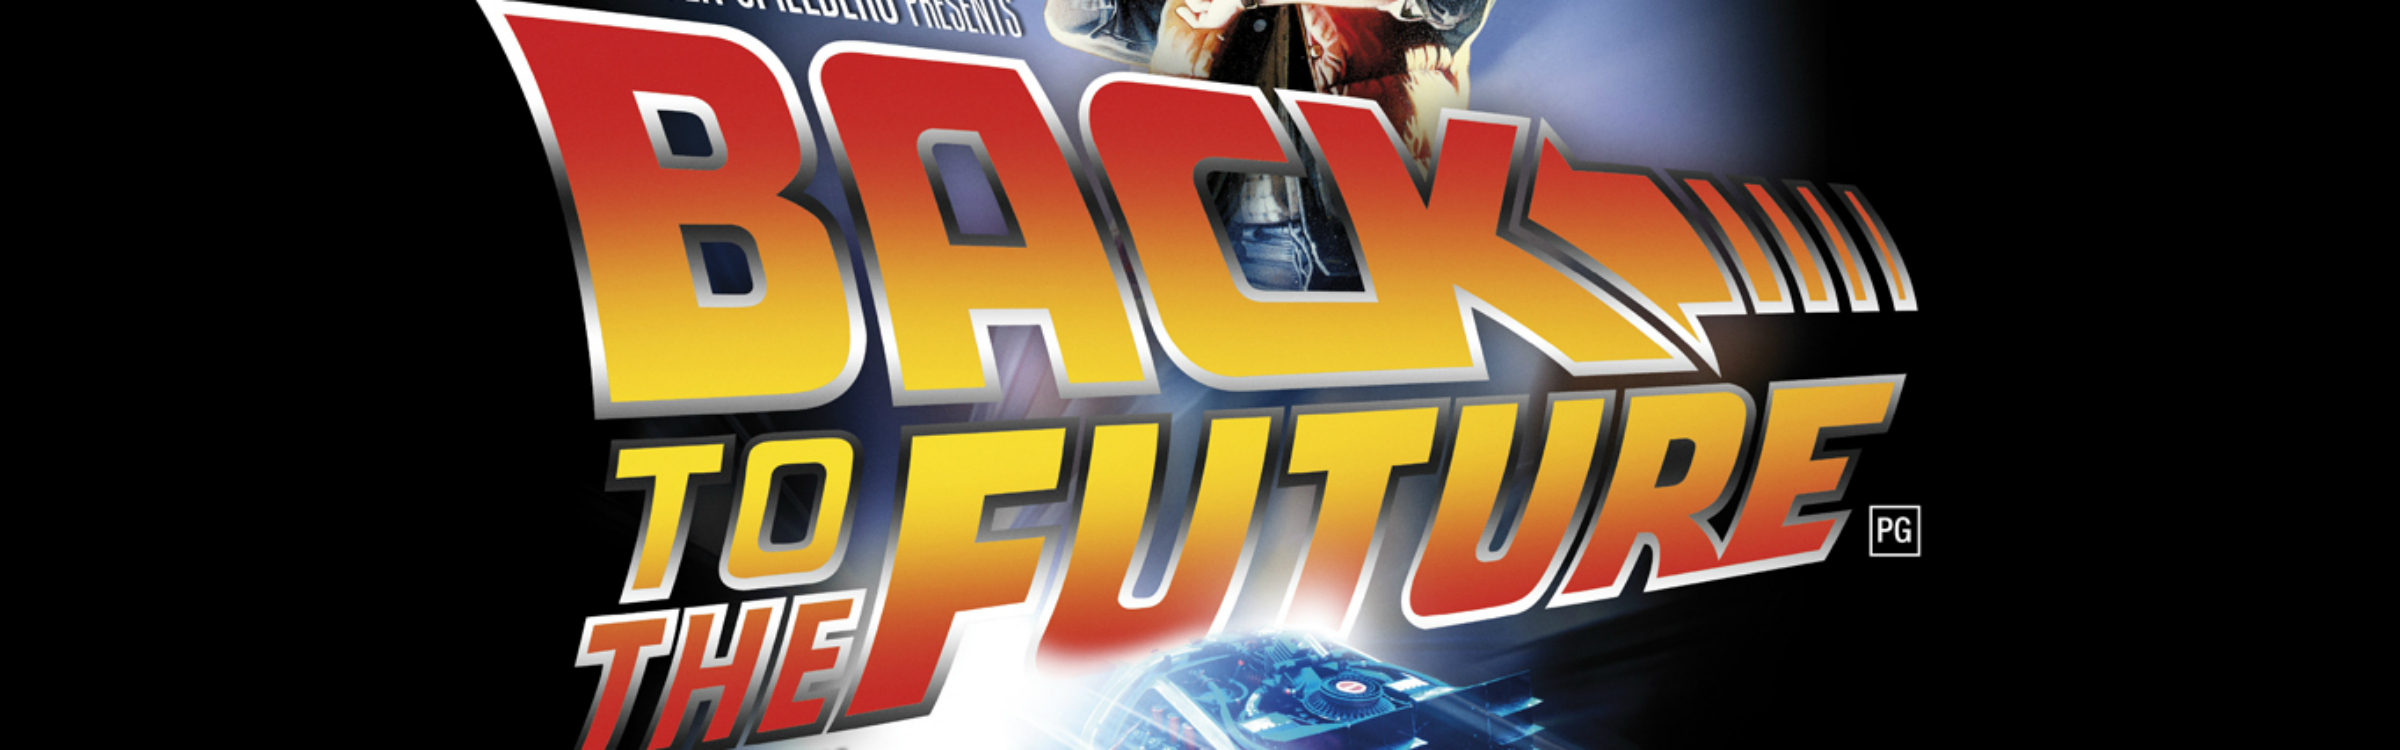 Back to the futureheader